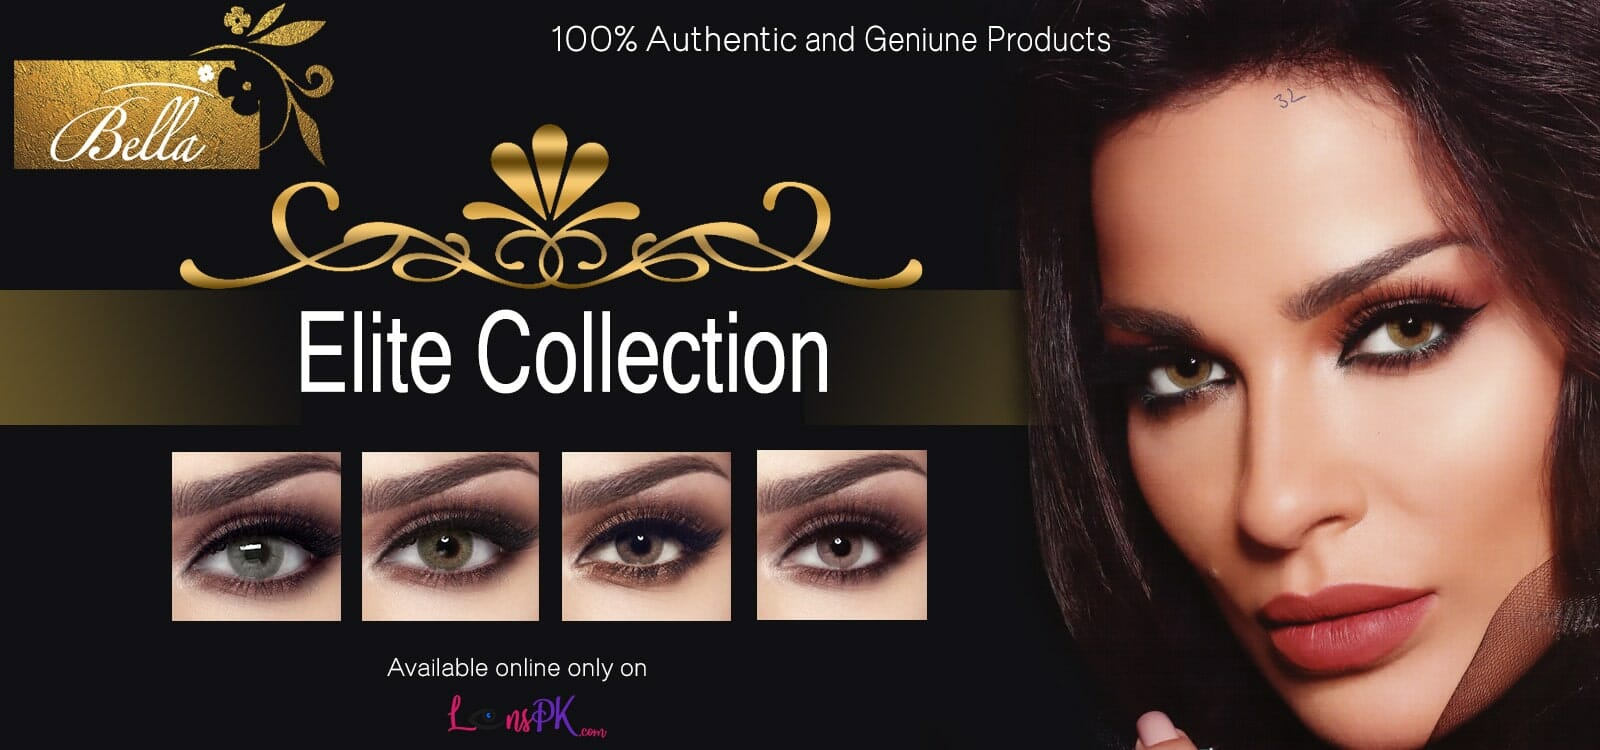 Buy Bella Contact Lenses - Elite Collection - lenspk.com